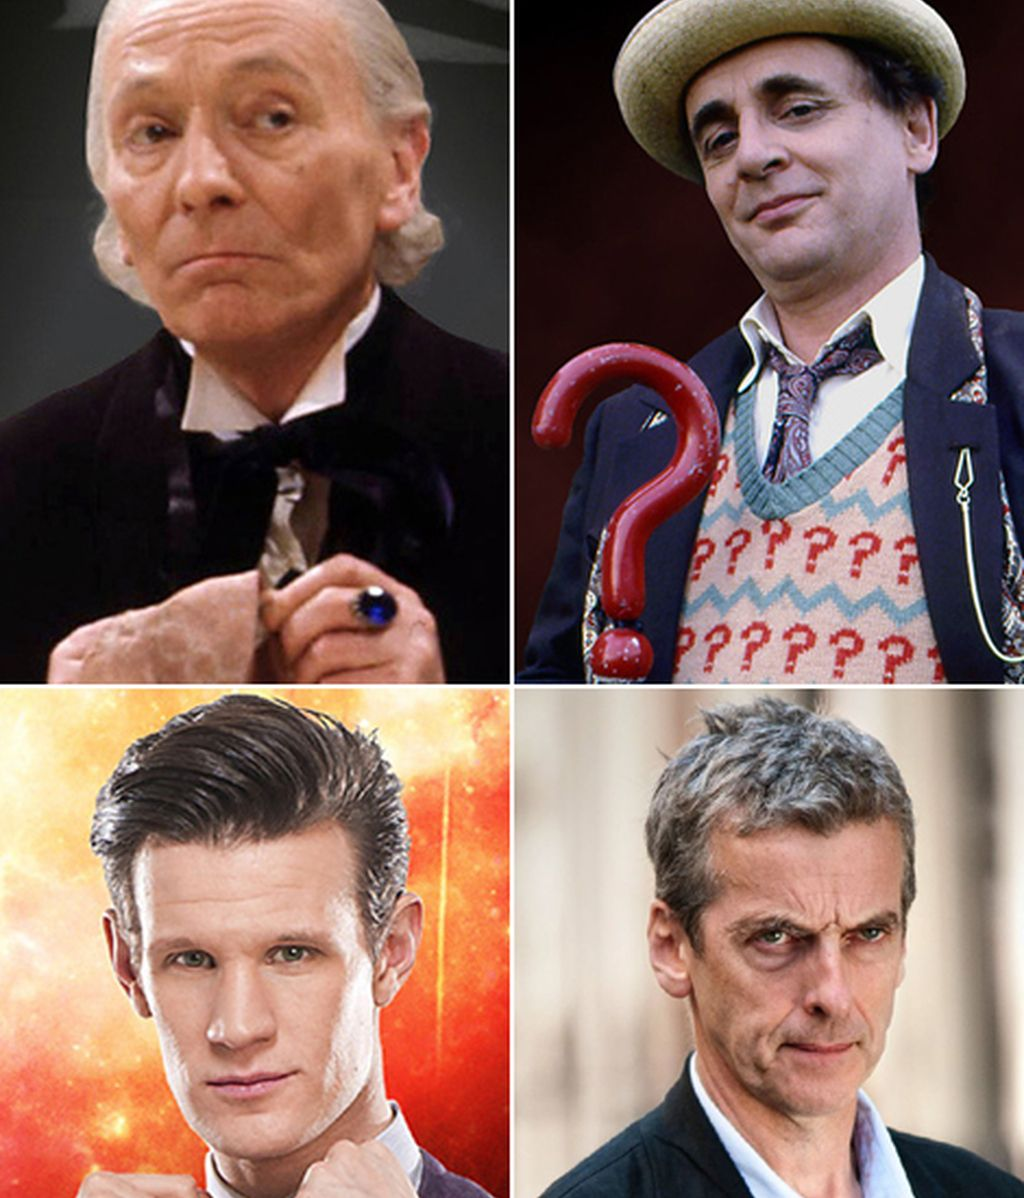 De William Hartnell a Peter Capaldi, 50 años de 'Doctor Who'